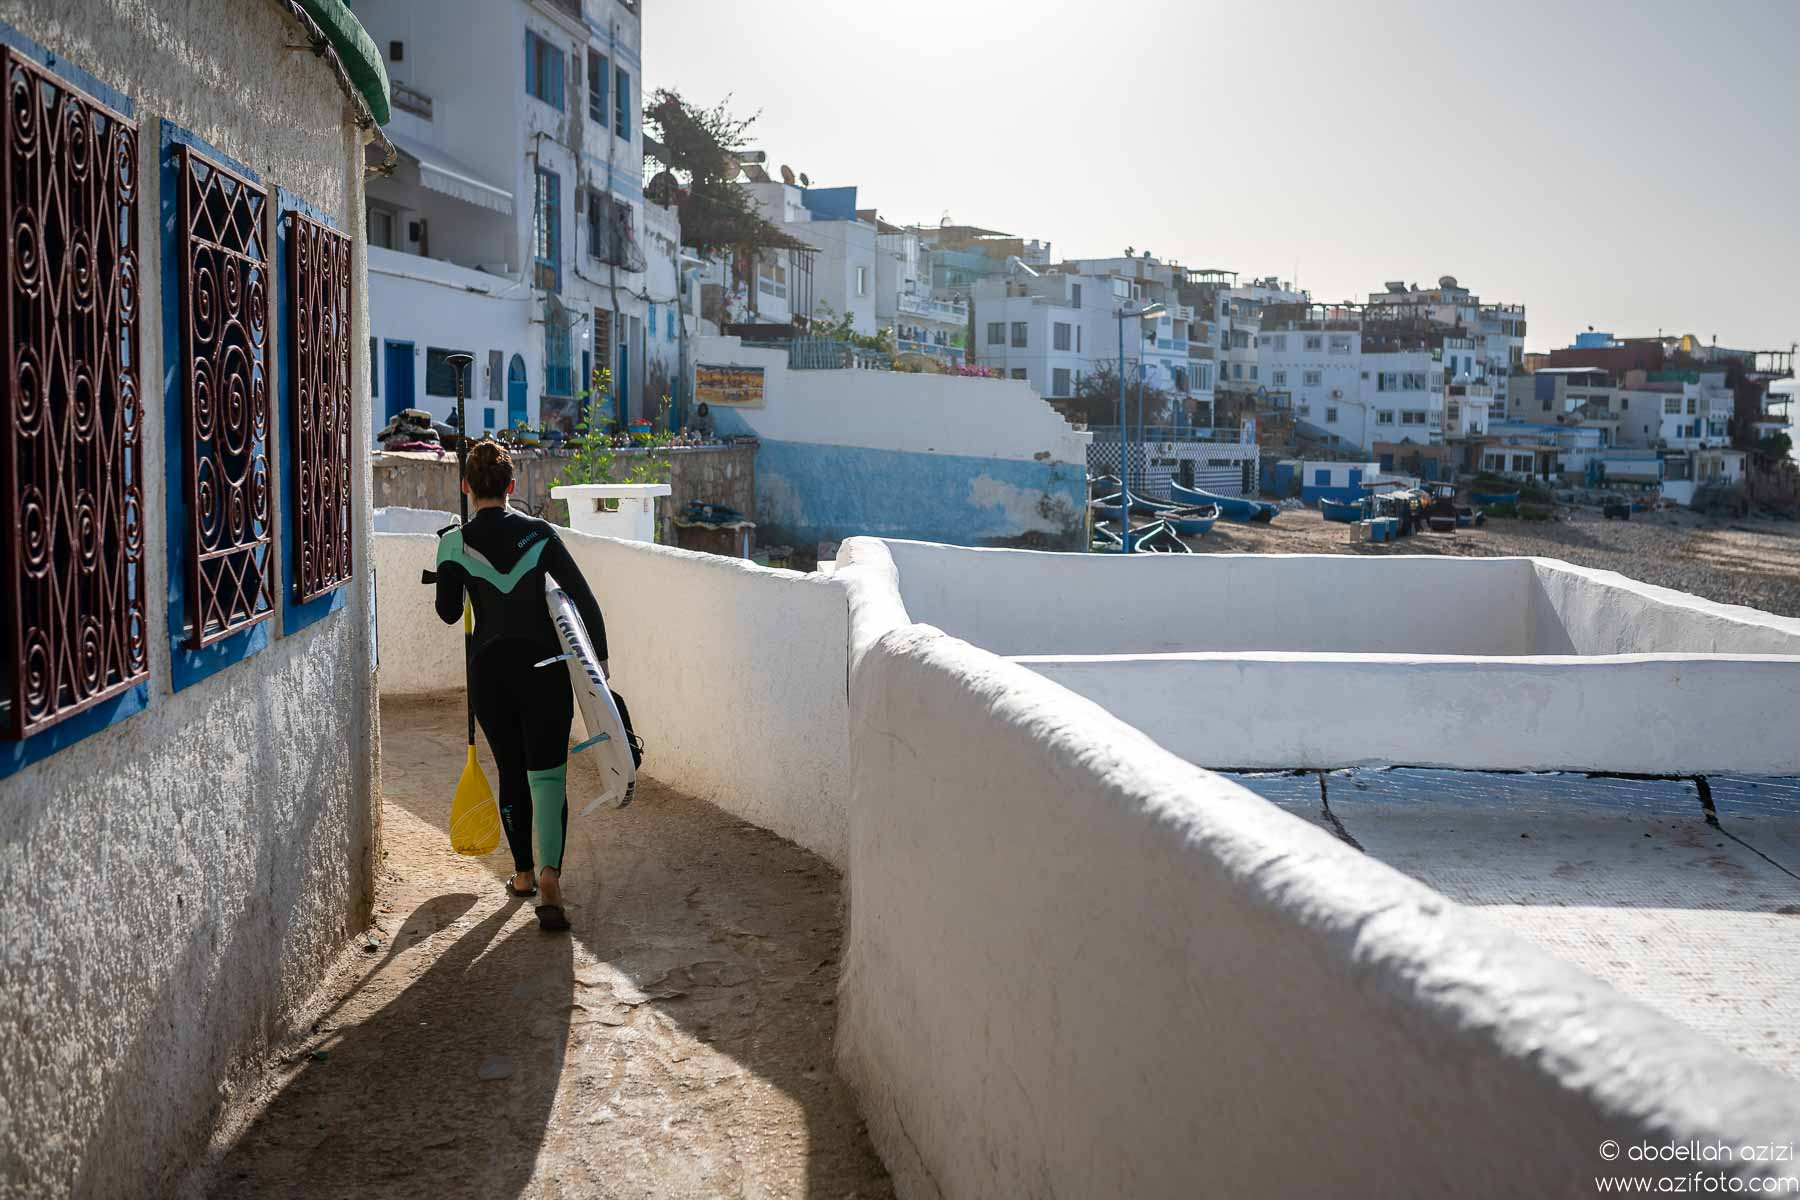 Surfer in Taghazout village, Morocco